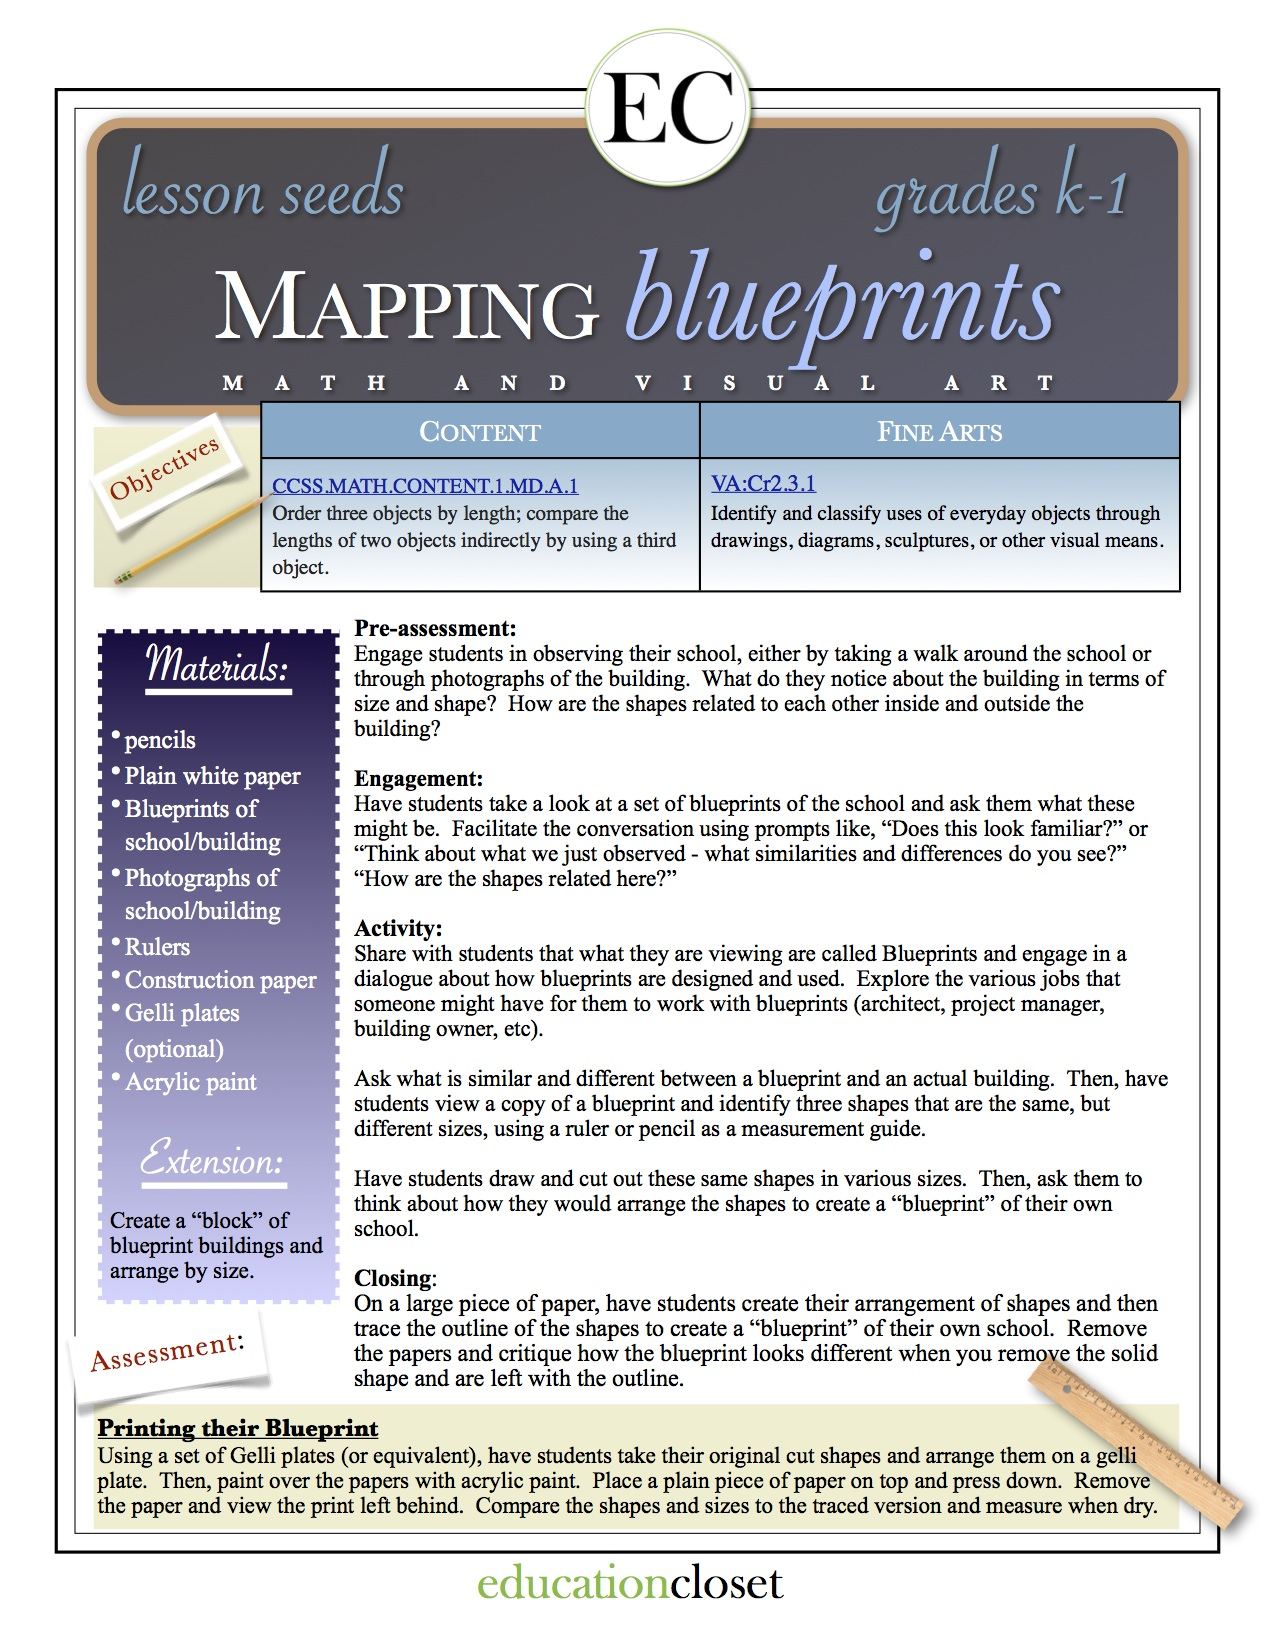 Arts integration lesson mapping blueprints educationcloset this is lesson takes between 45 75 minutes to complete and can be done in either the math or visual art classroom mapping blueprints malvernweather Image collections